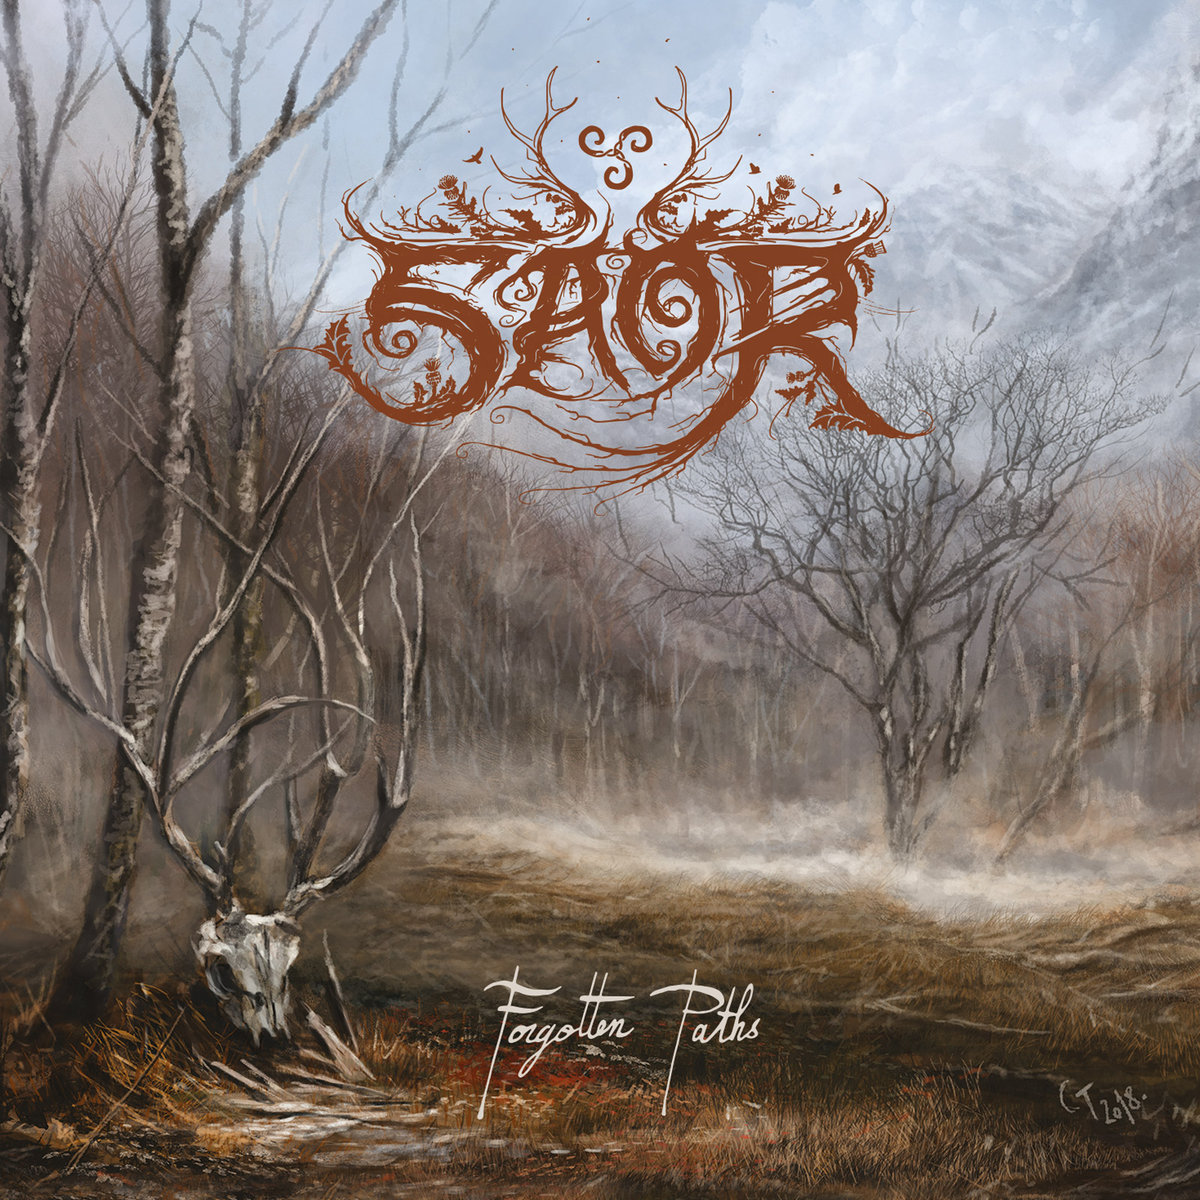 Saor - Forgotten Paths (2019)